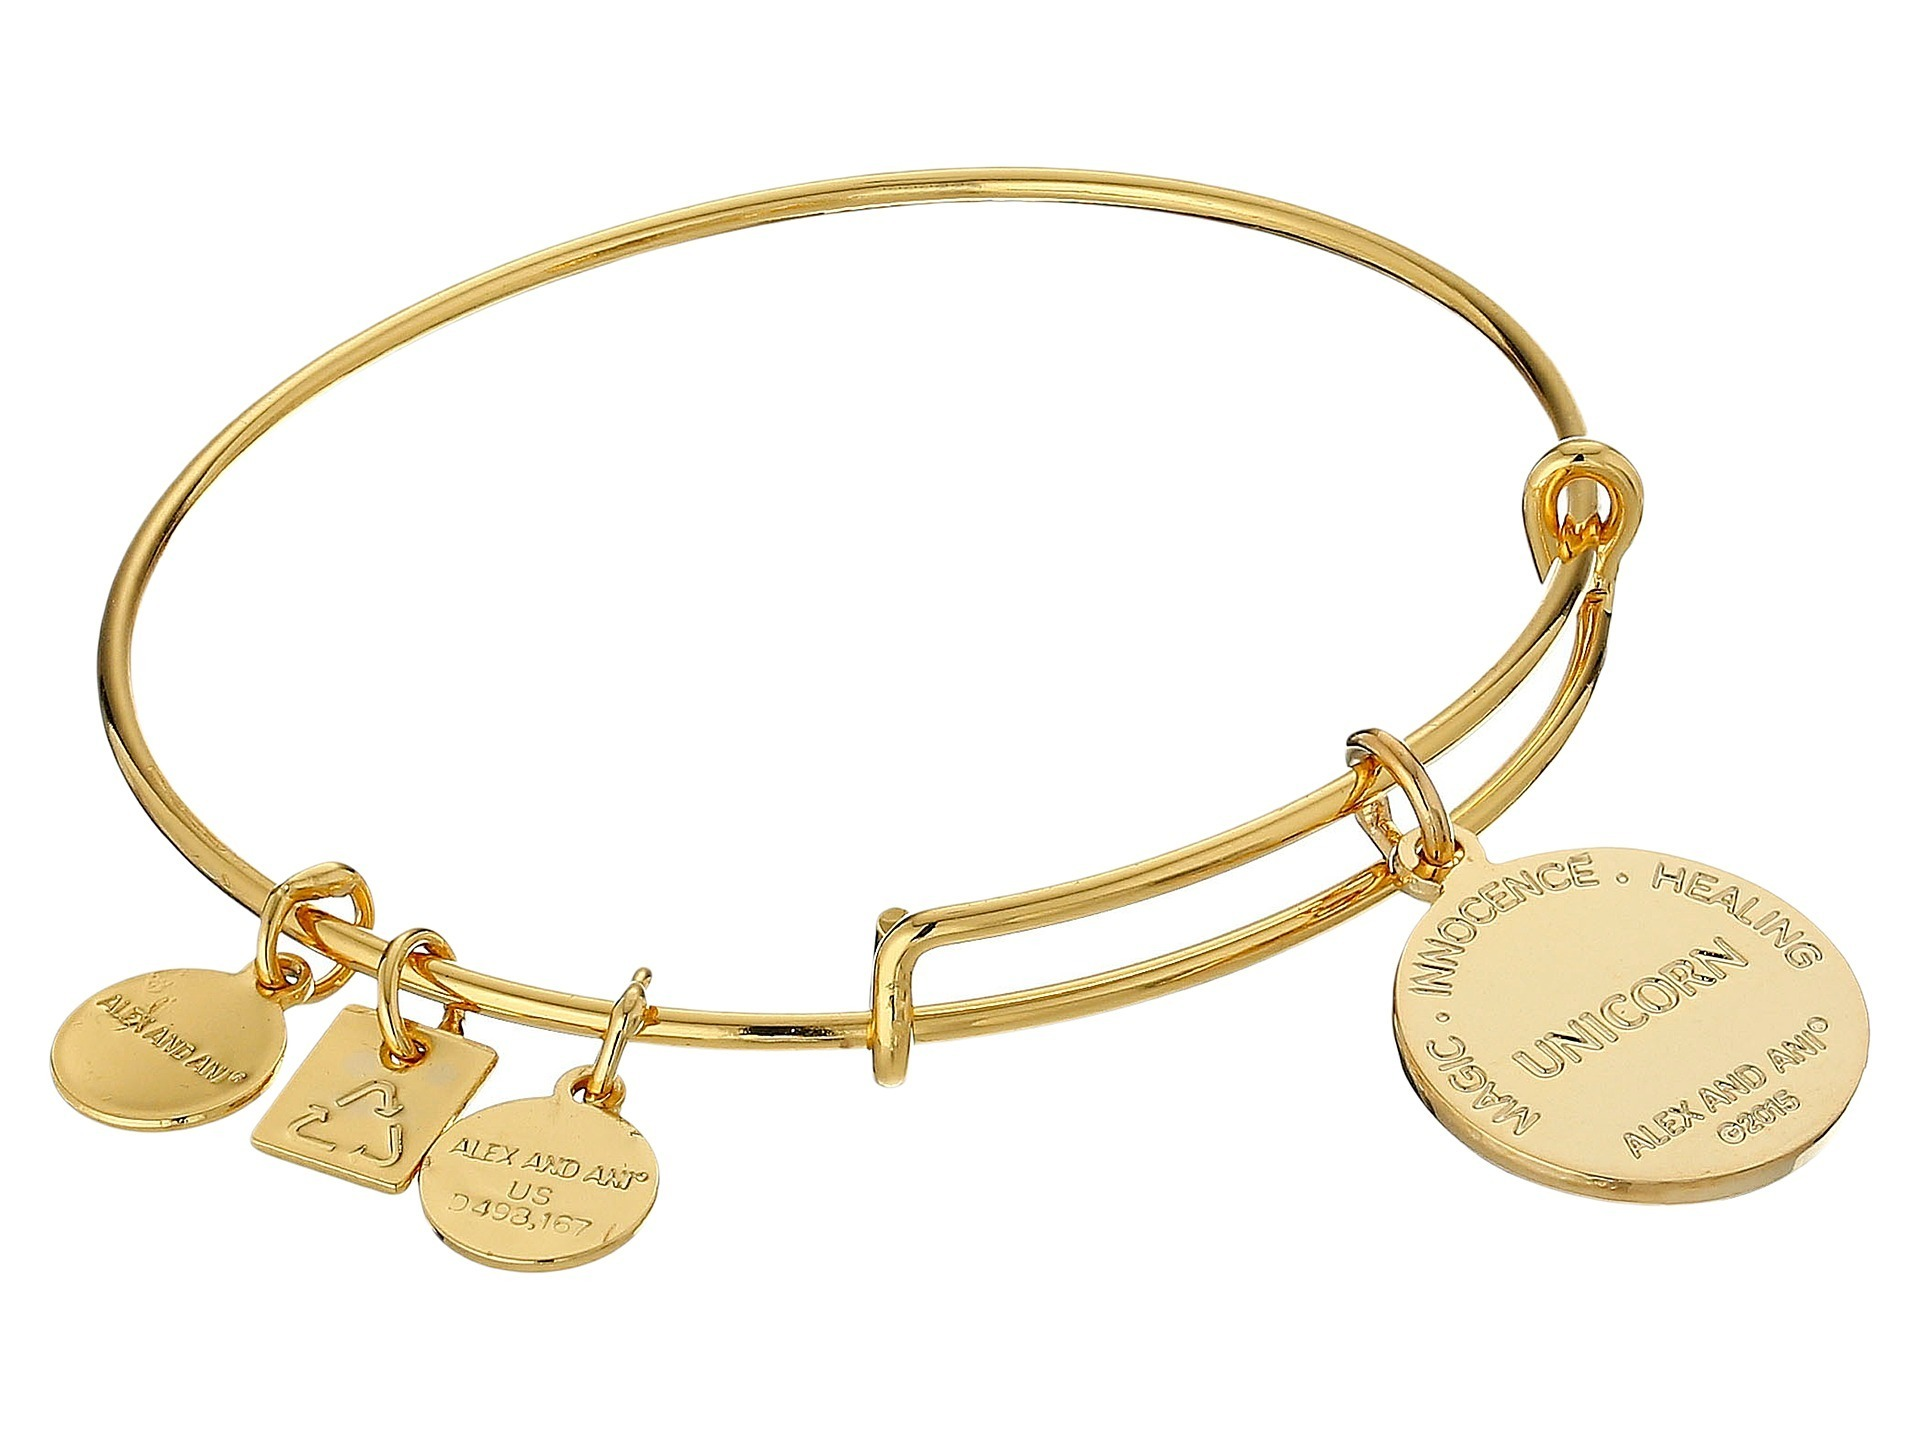 【大人気】Charity by Design Unicorn Charm Bangle バングル